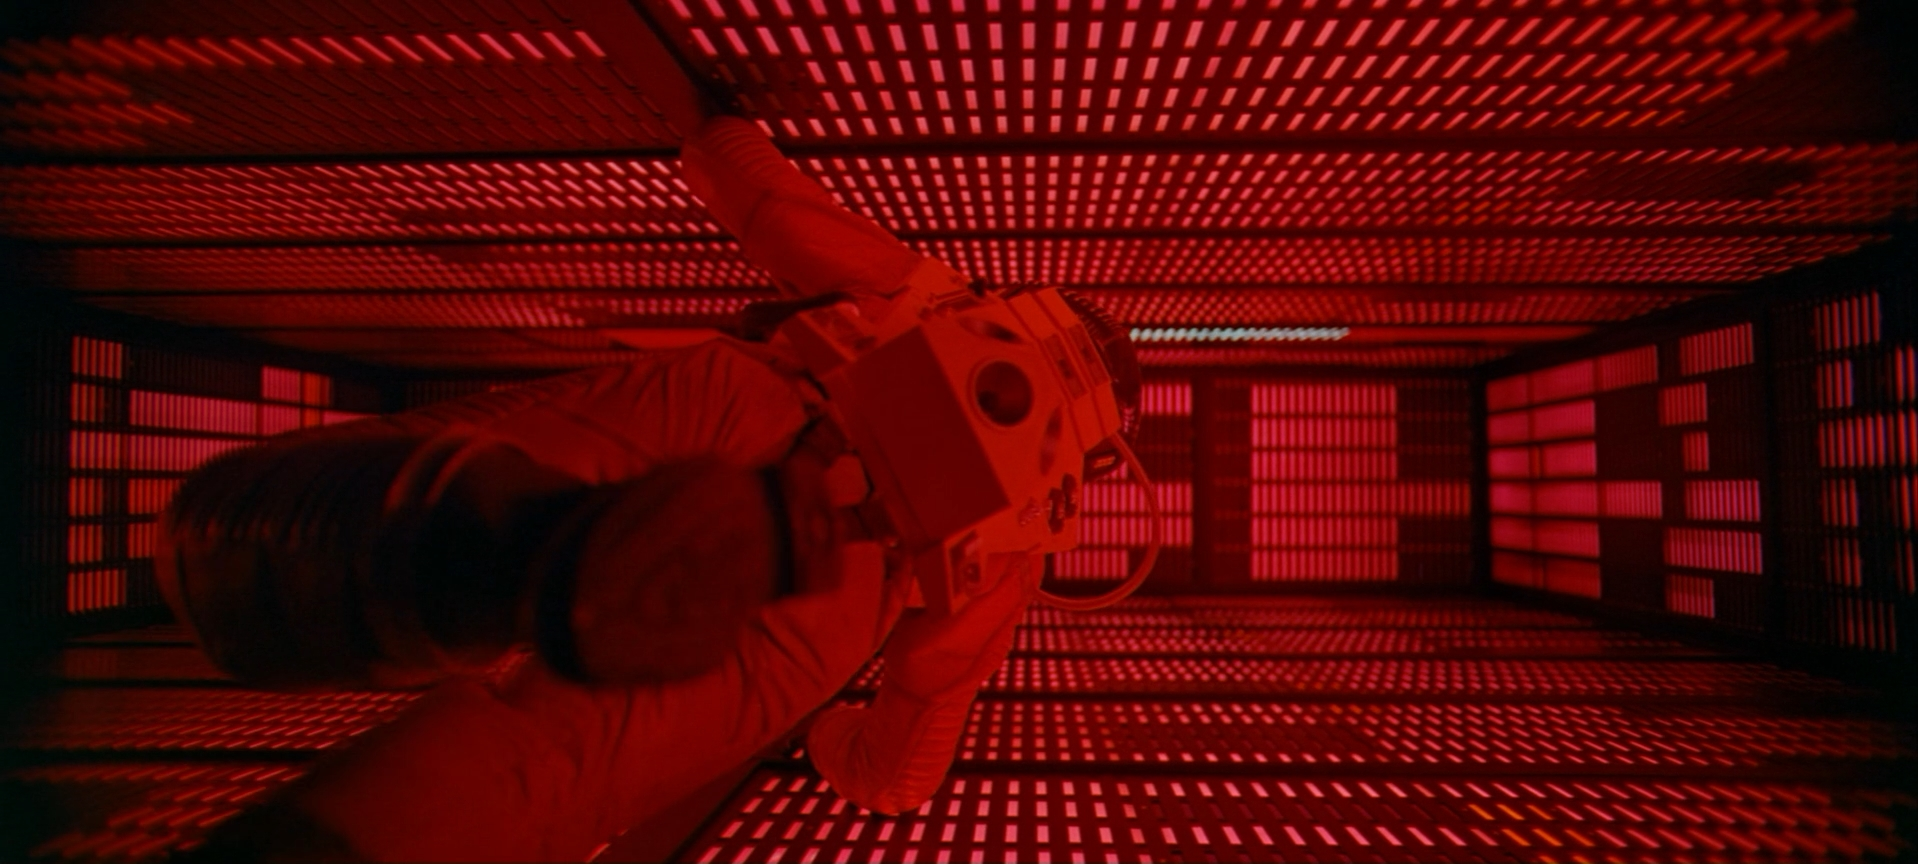 2001 A space Odyssey BD.mp4_snapshot_01.51.36_[2020.08.26_21.58.18].jpg